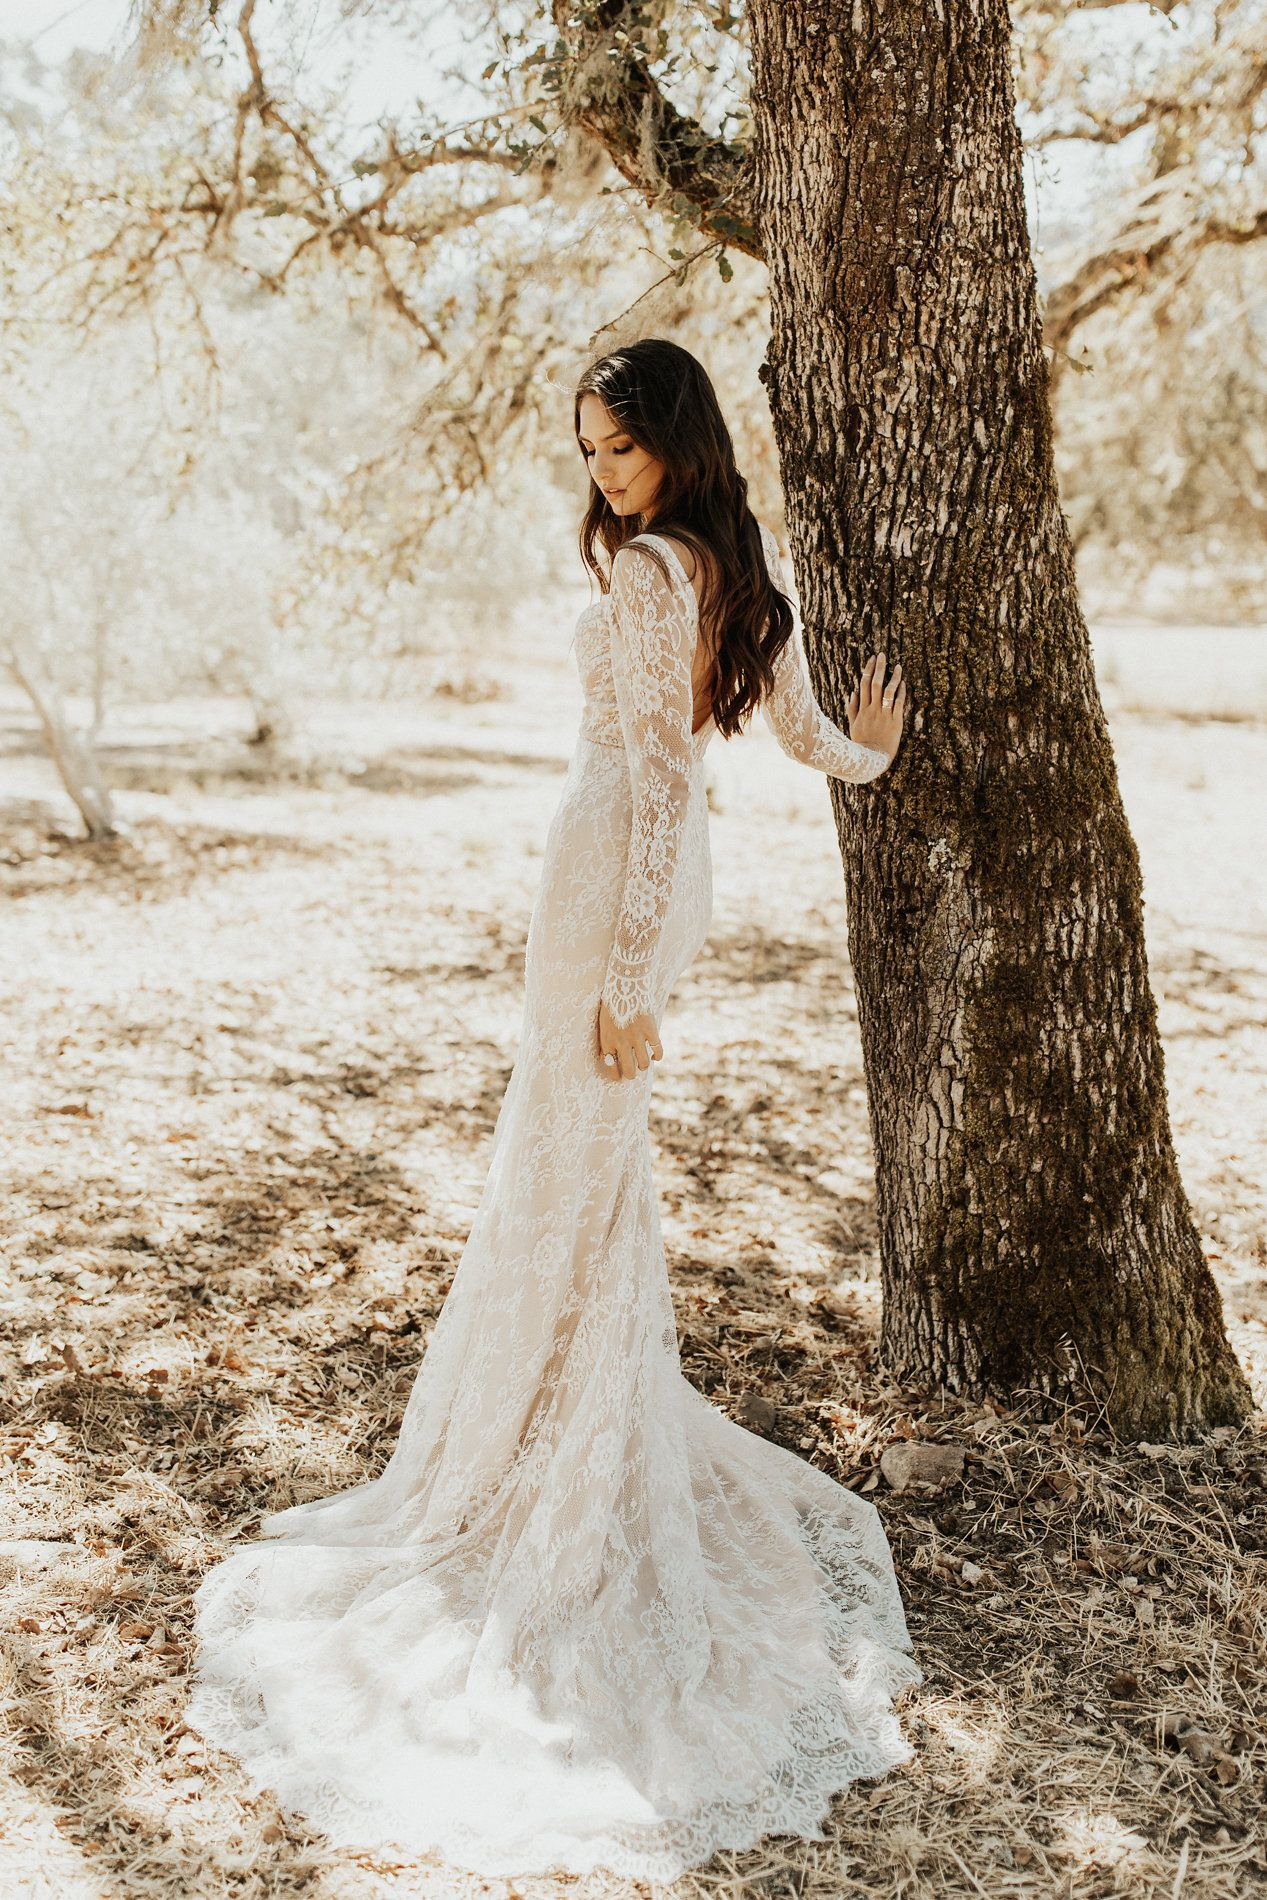 Tara lauren west gown all over lace long sleeve with illusion